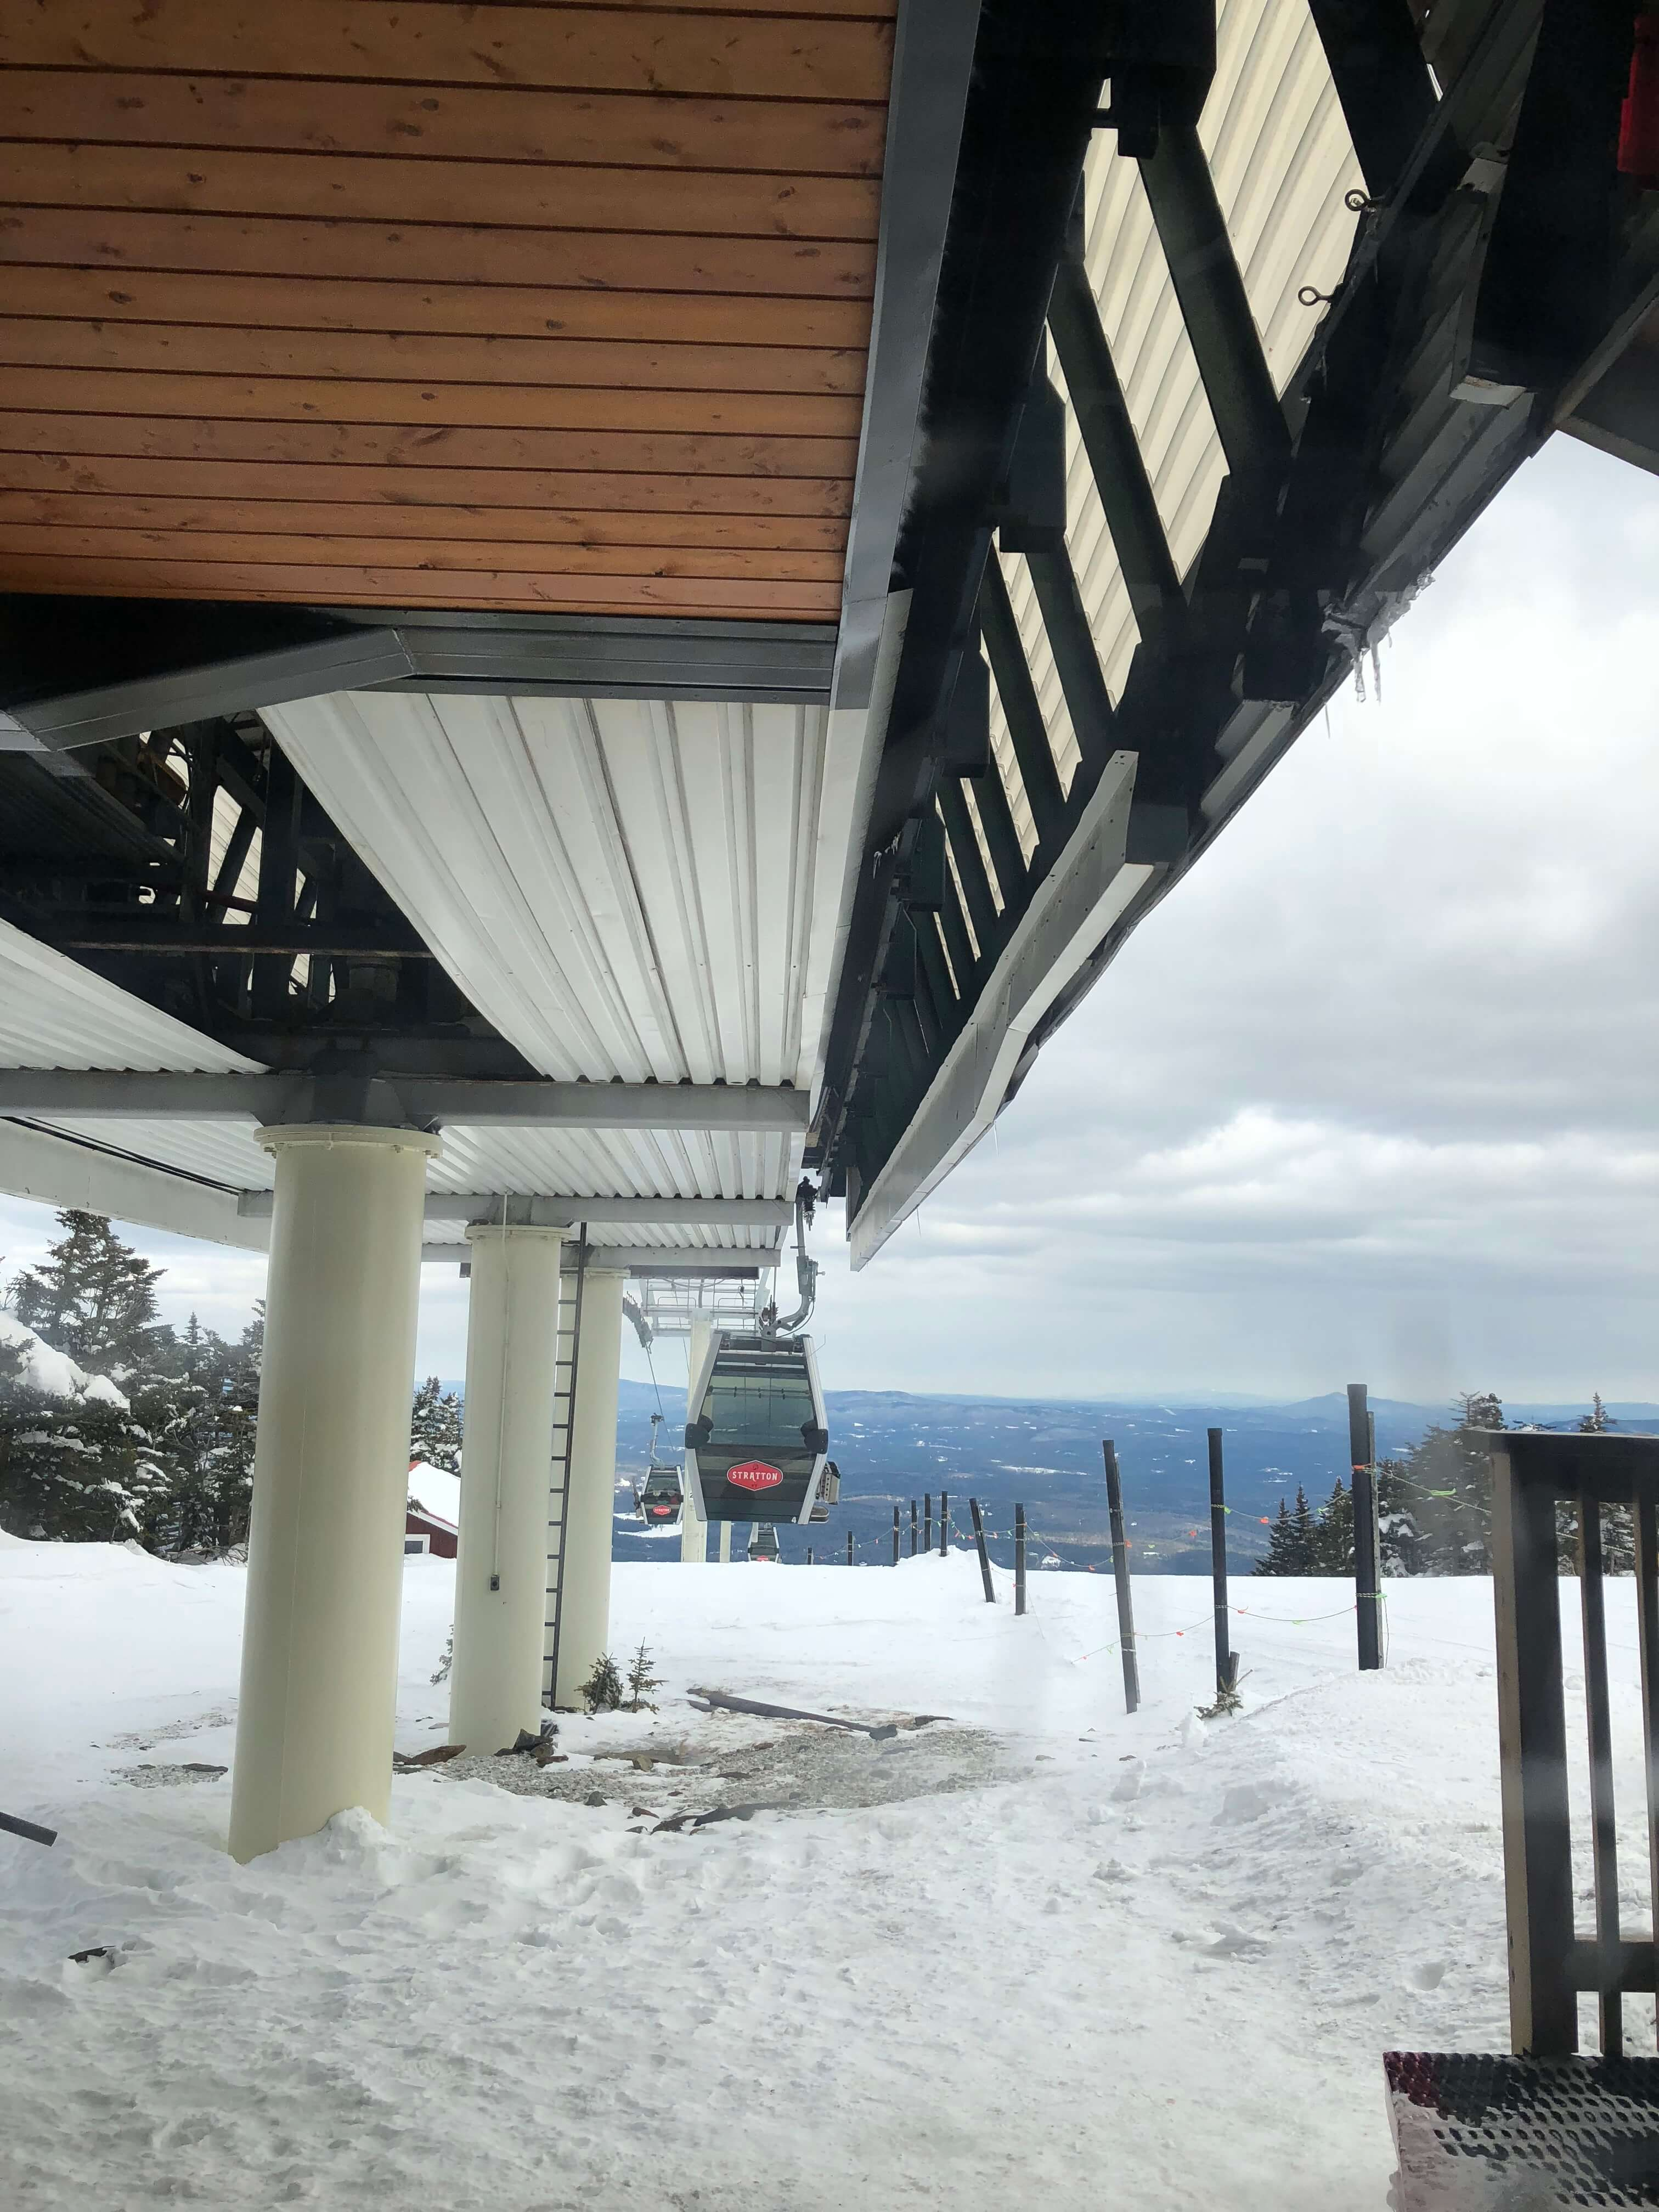 learning to ski as an adult at stratton mountain lift